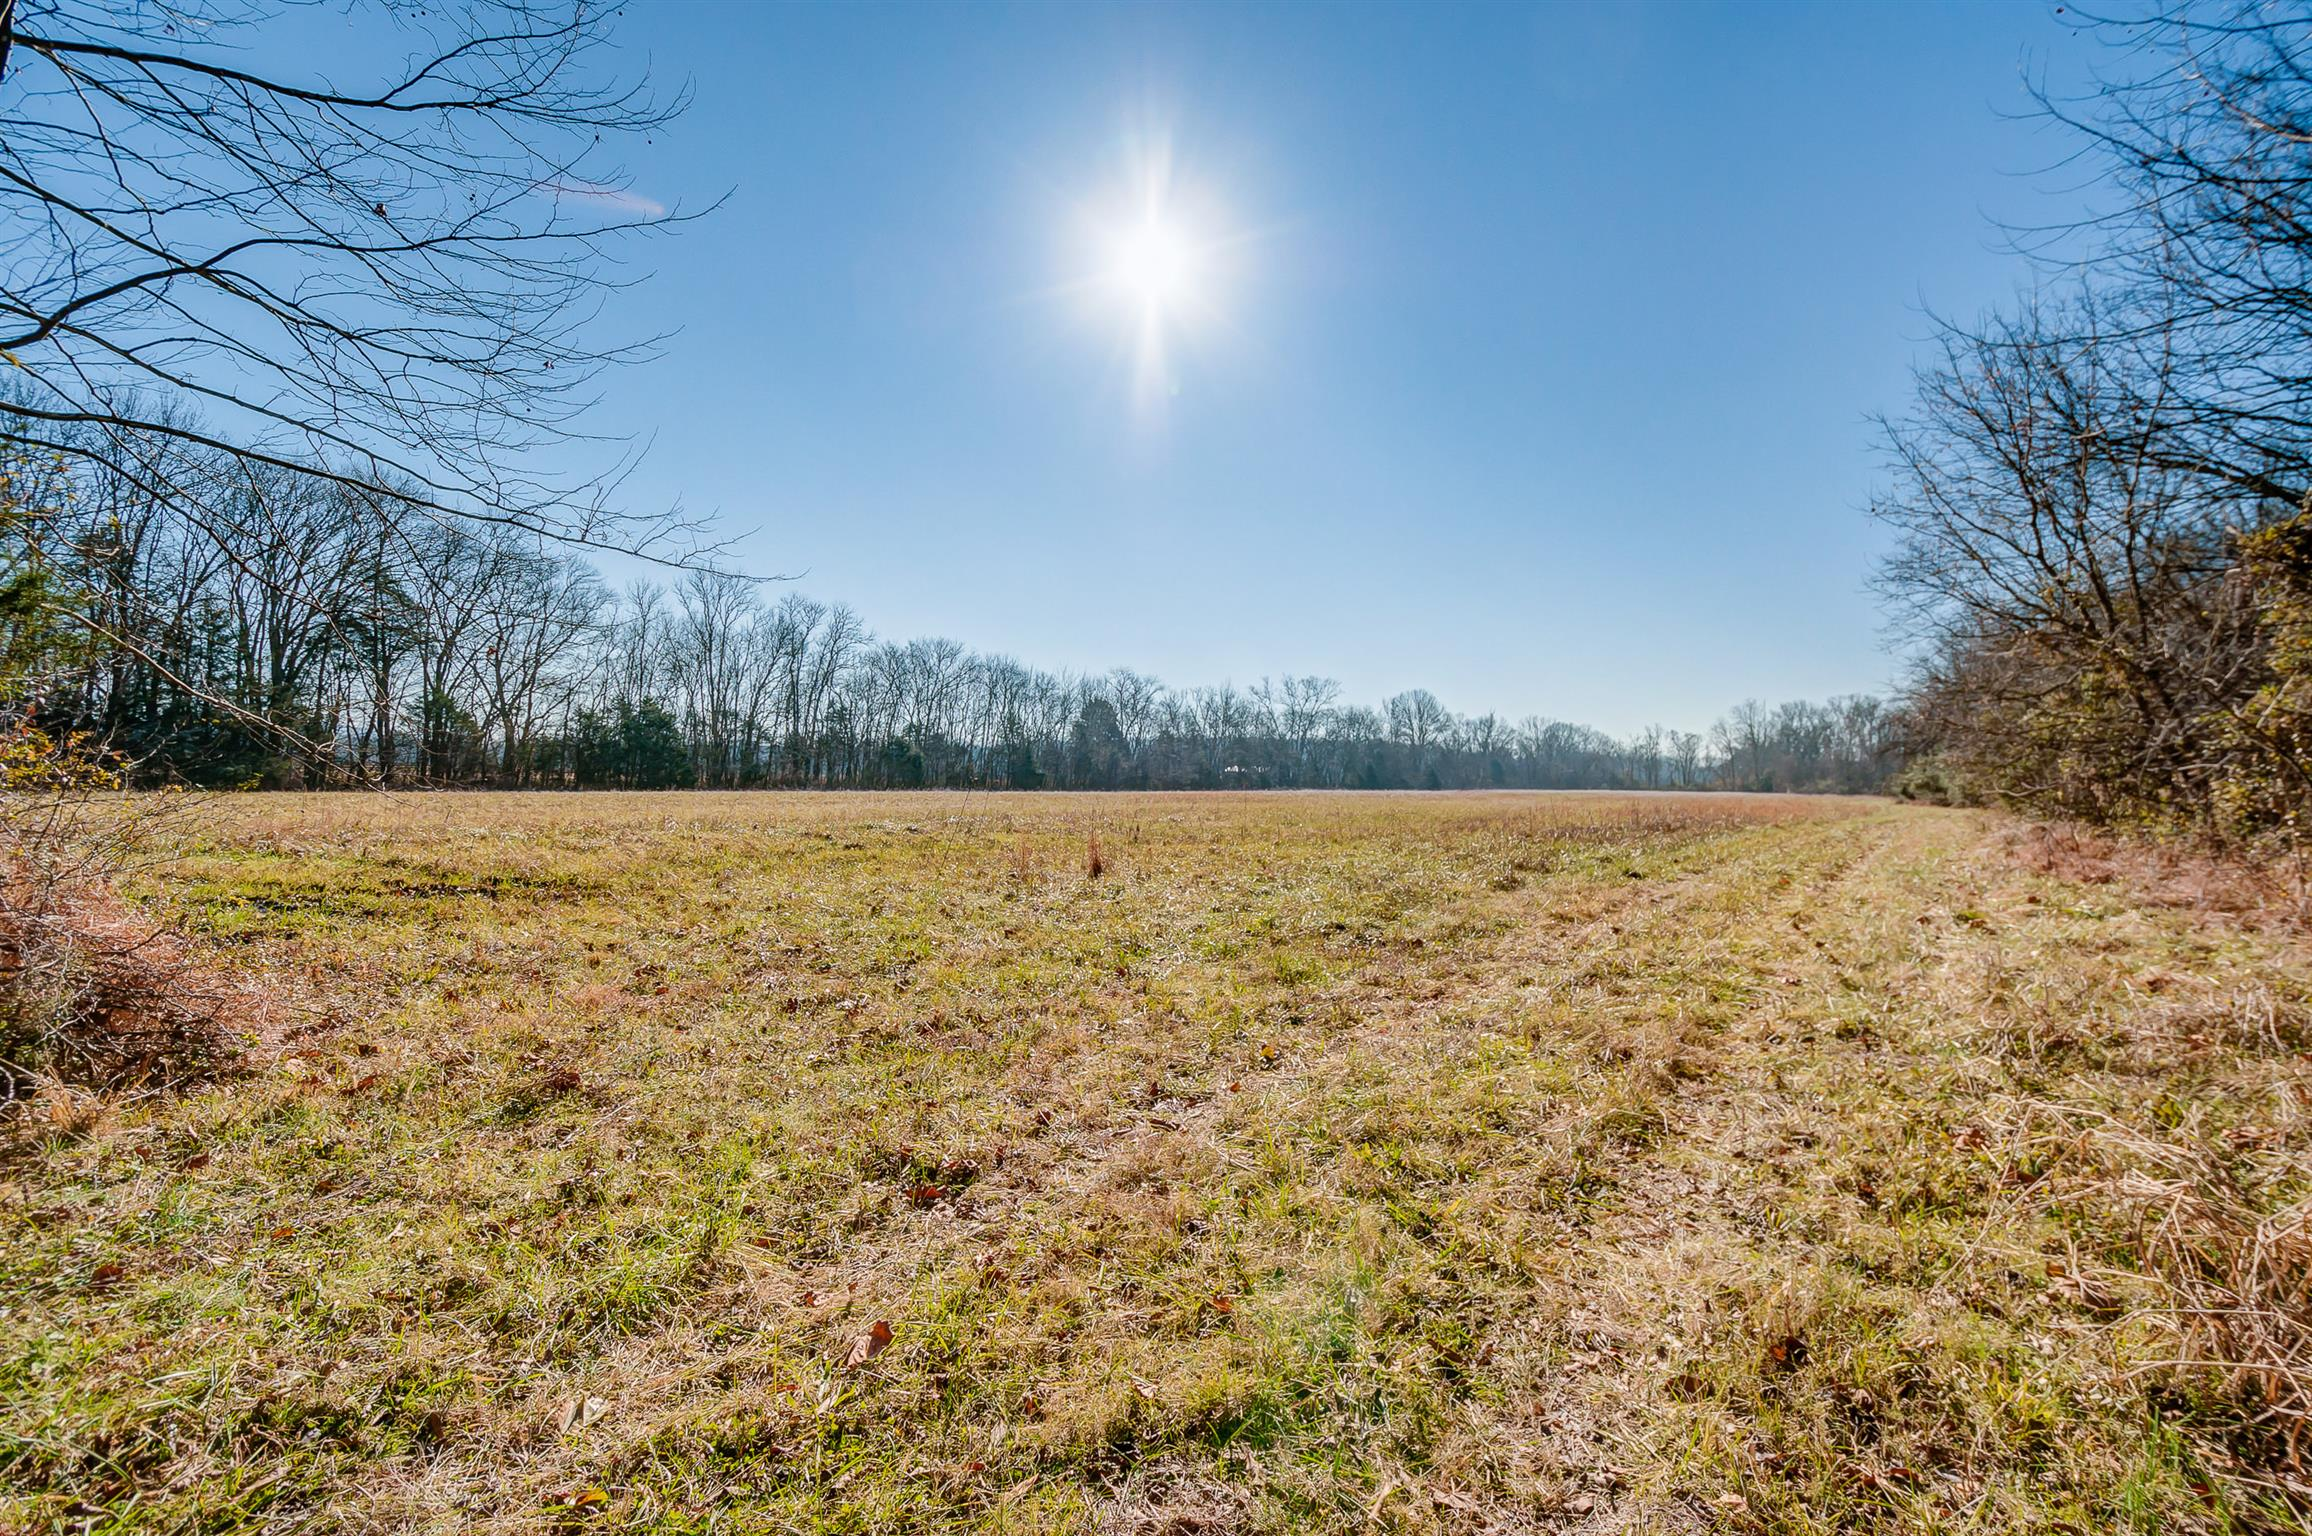 0 Wilson Park, Franklin, TN 37067 - Franklin, TN real estate listing